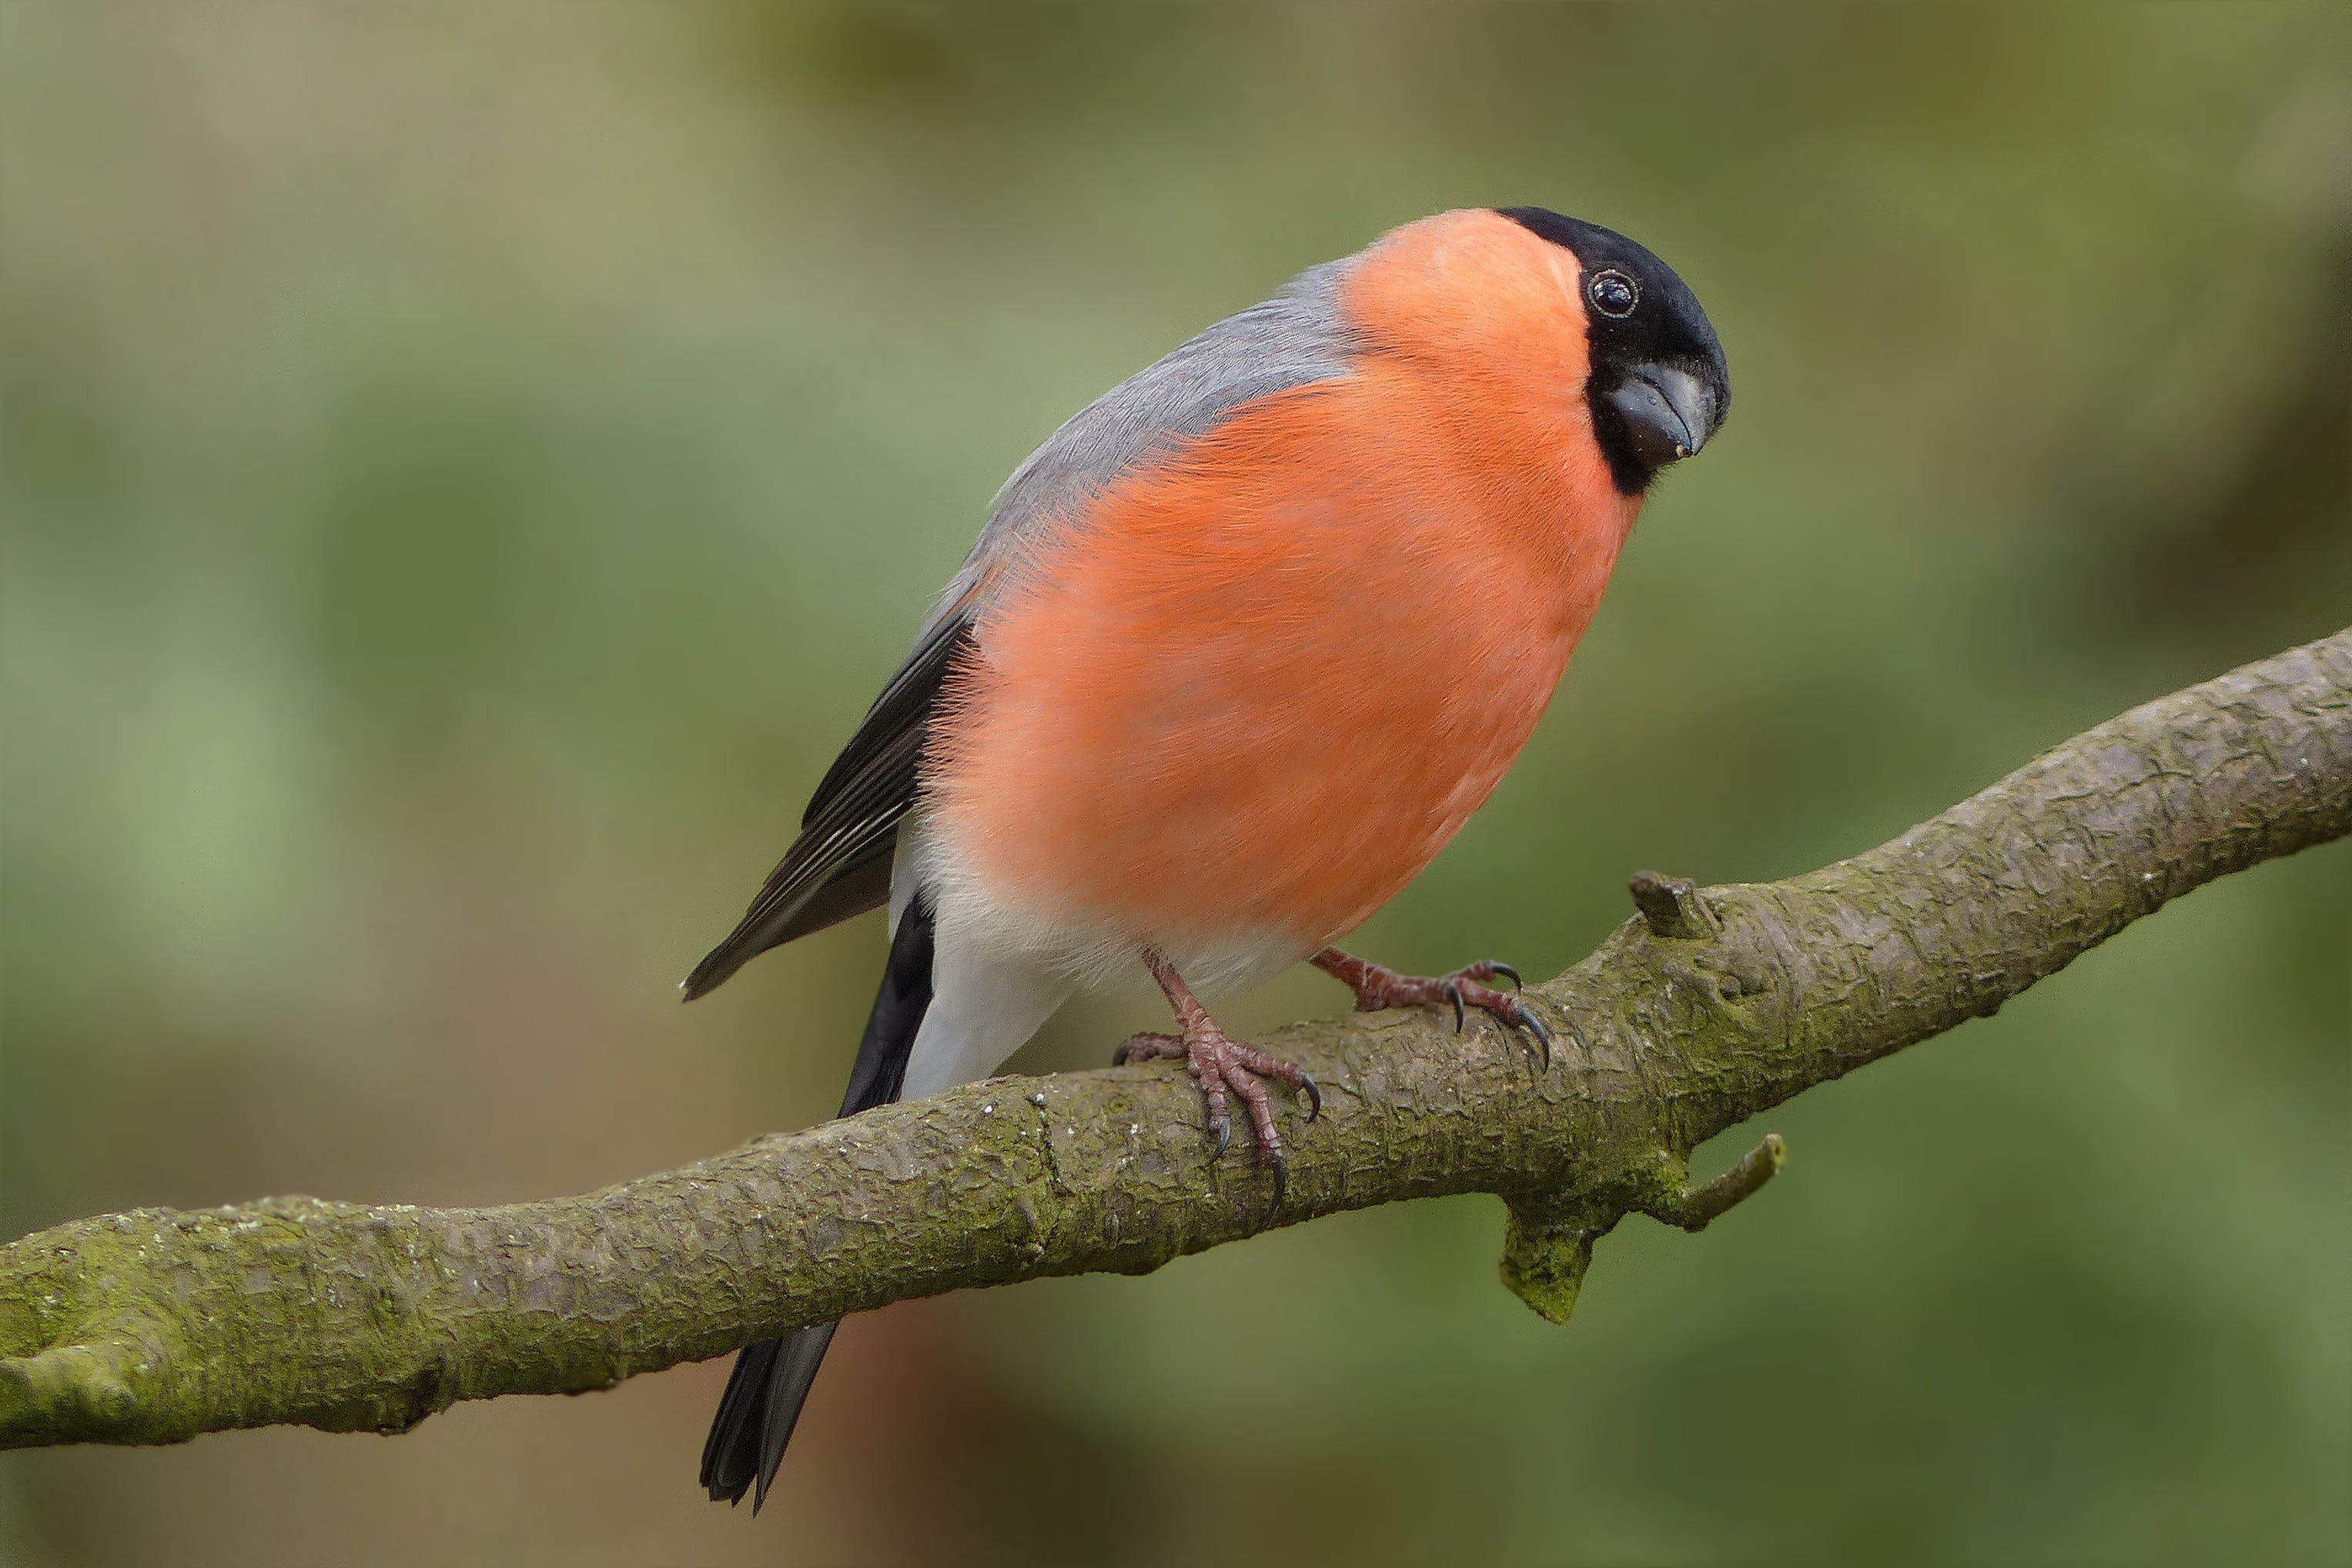 Orange and Black Bird Perched on Brown Stem